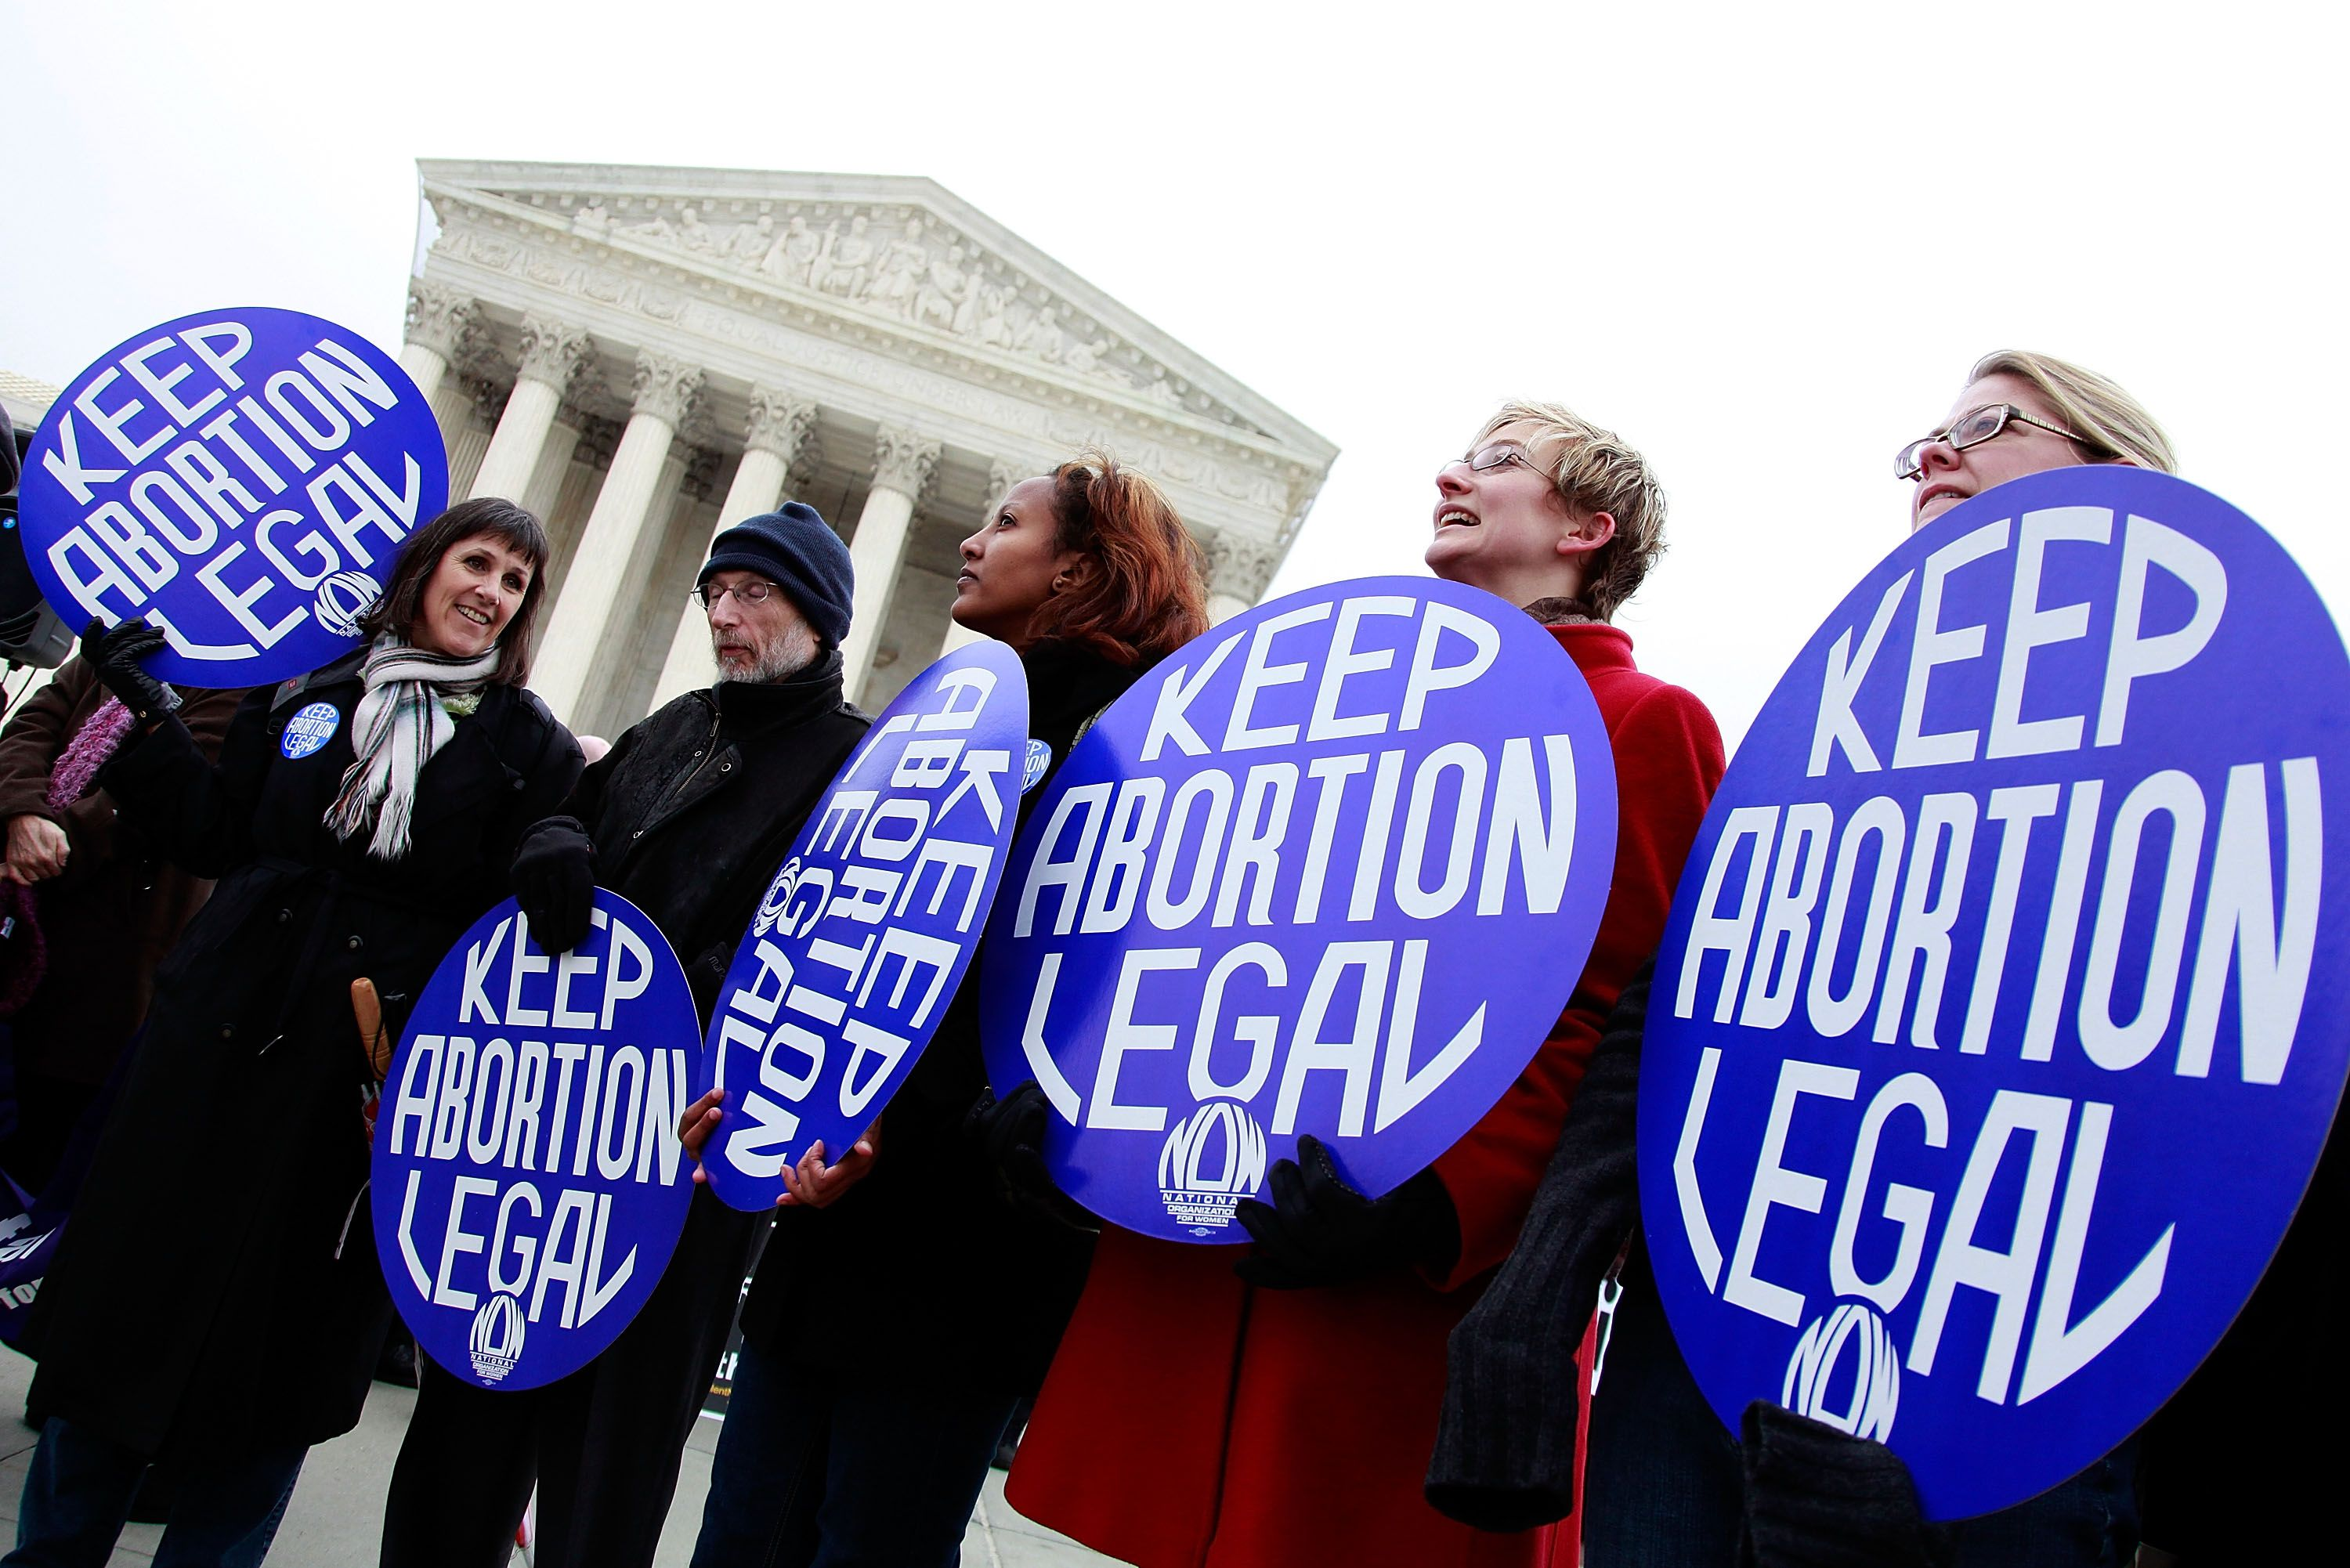 Supporters And Opponents Commemorate 37th Anniversary Of Roe v. Wade